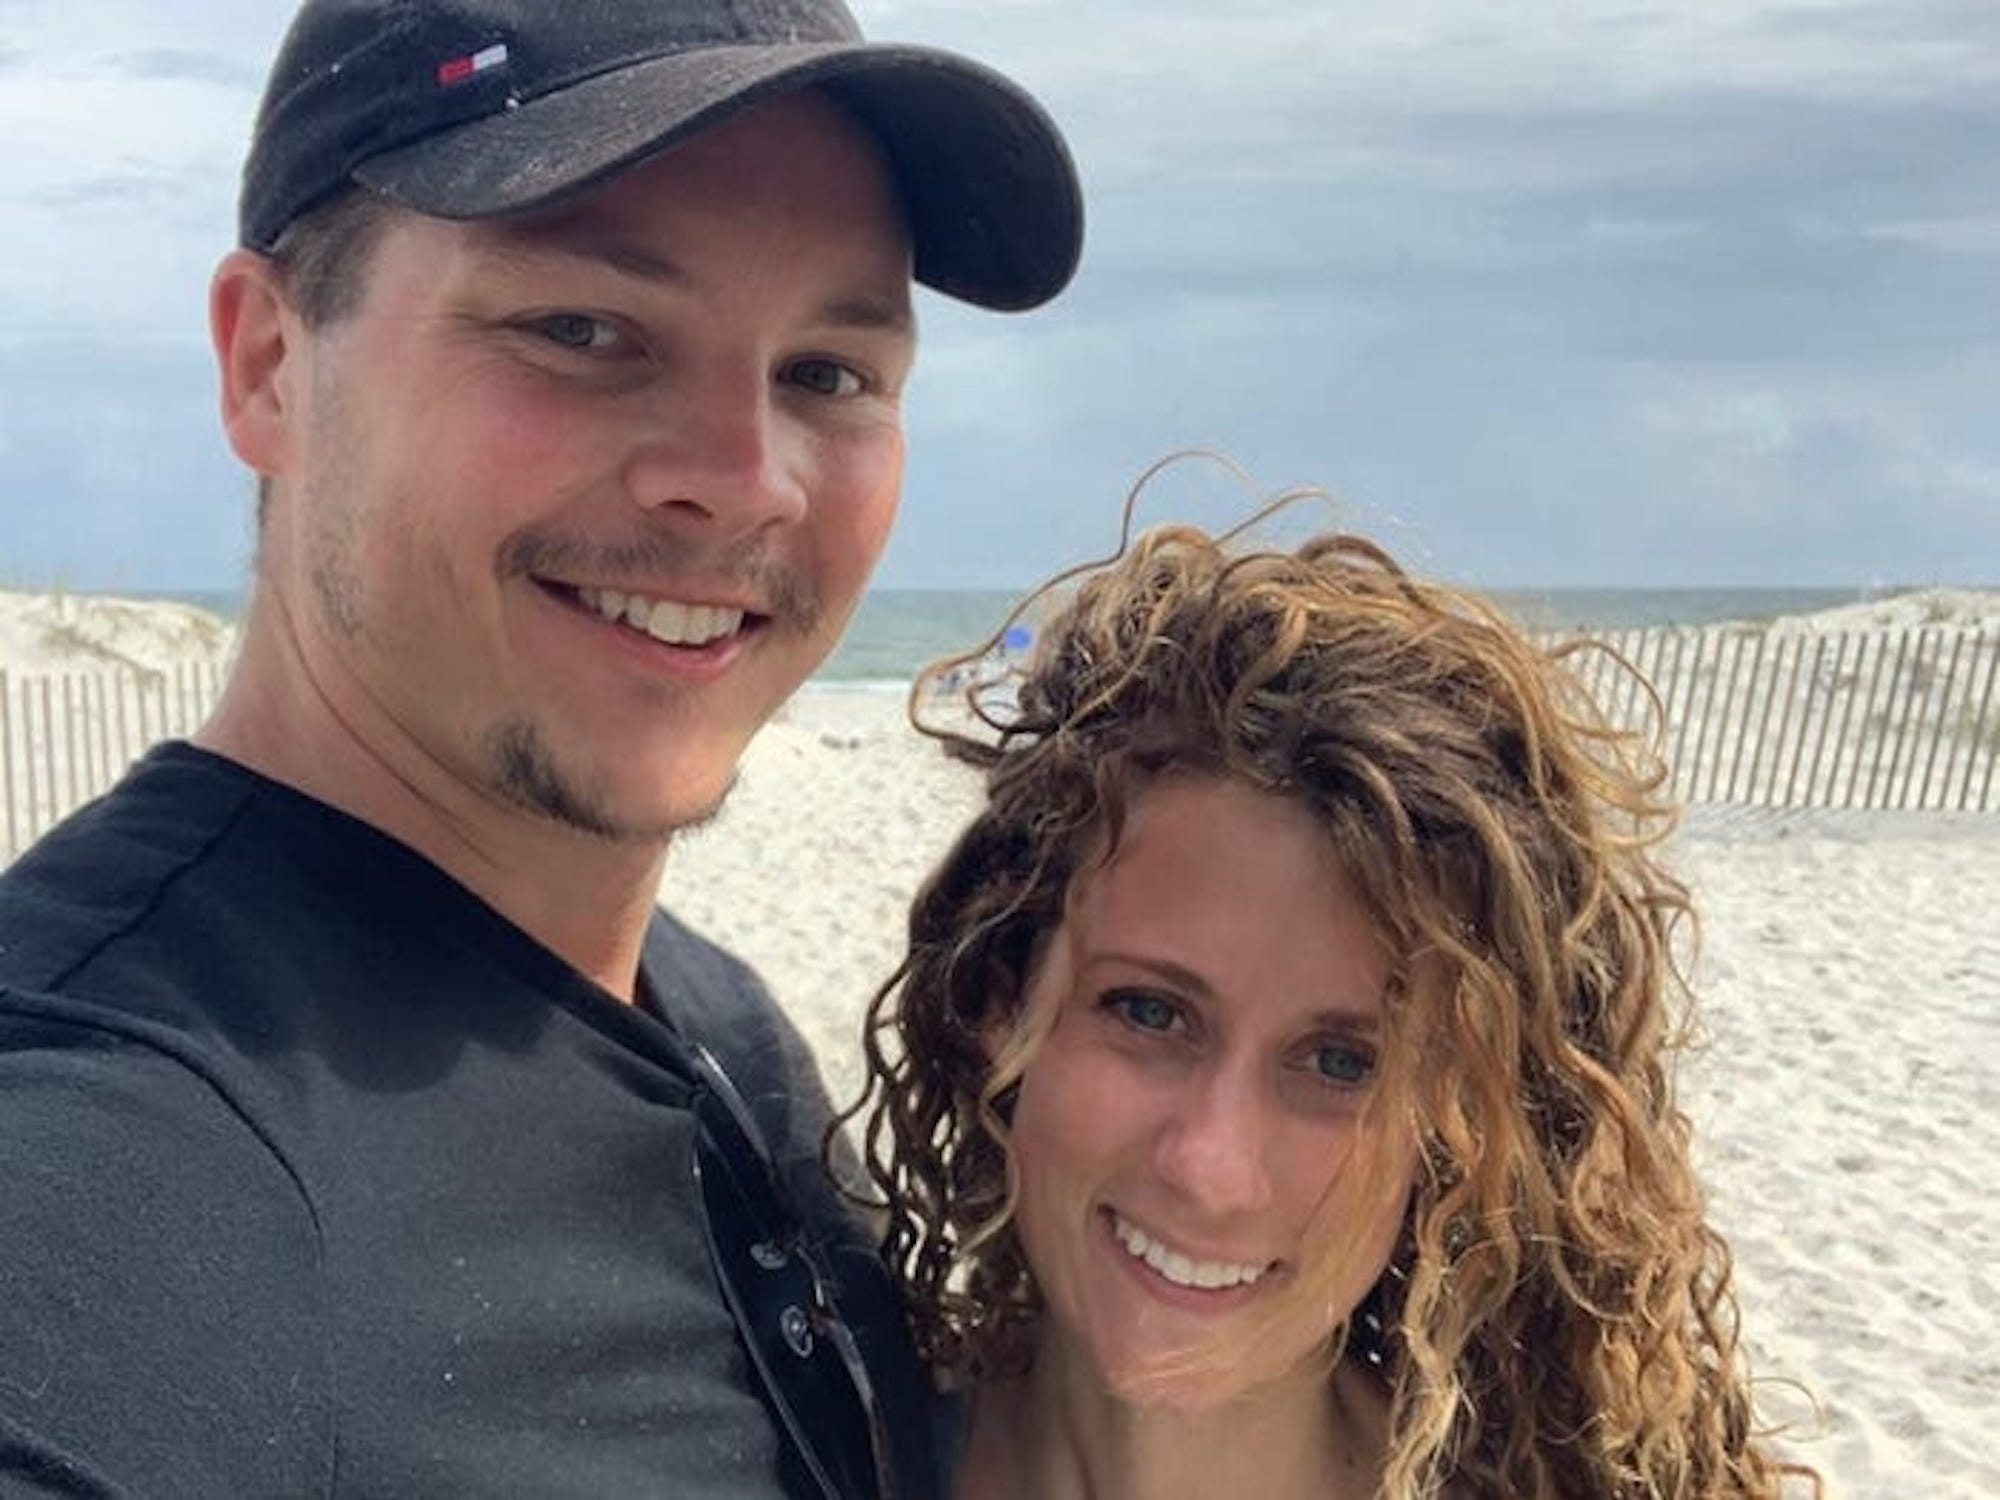 Olivia Christensen (right) with her husband at the beach.